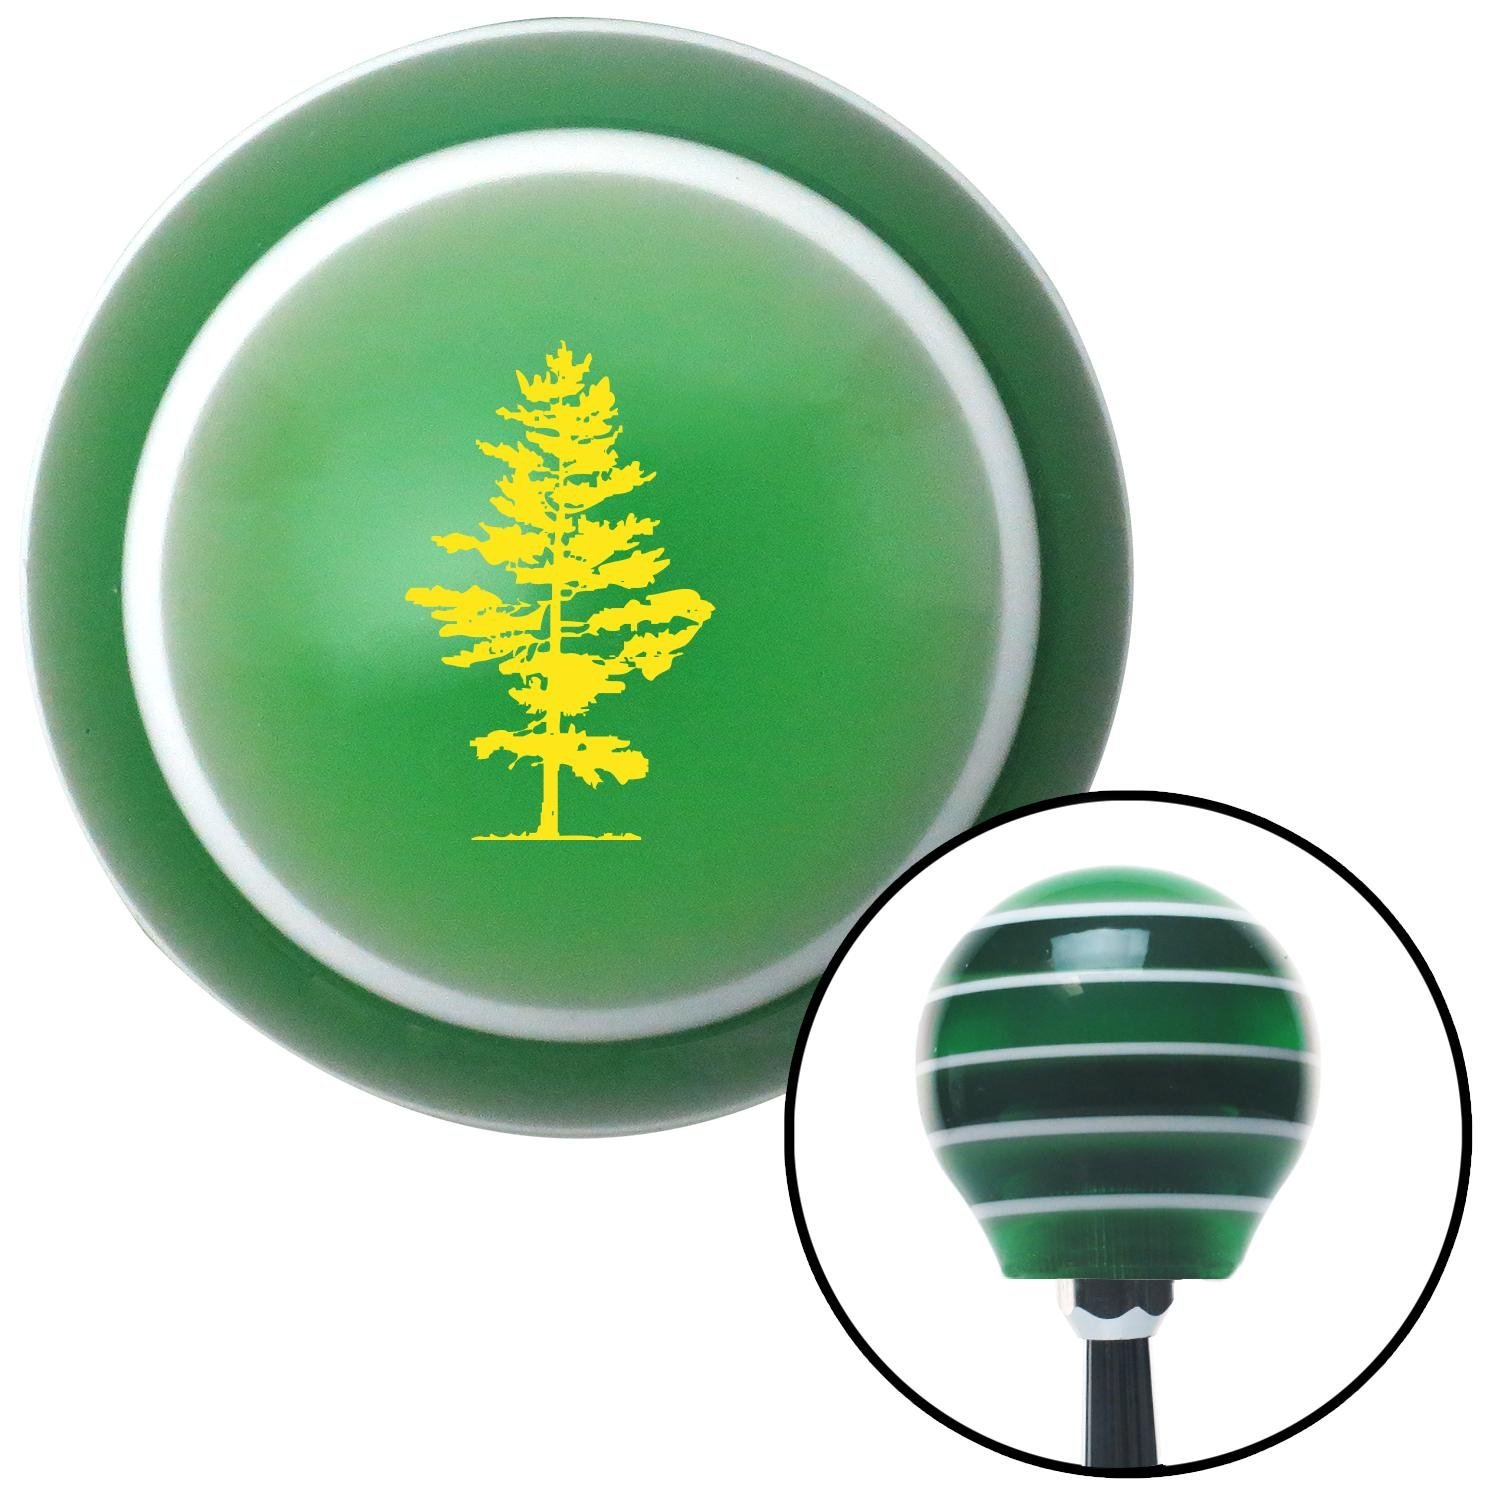 Yellow Evergreen Tree American Shifter 125674 Green Stripe Shift Knob with M16 x 1.5 Insert